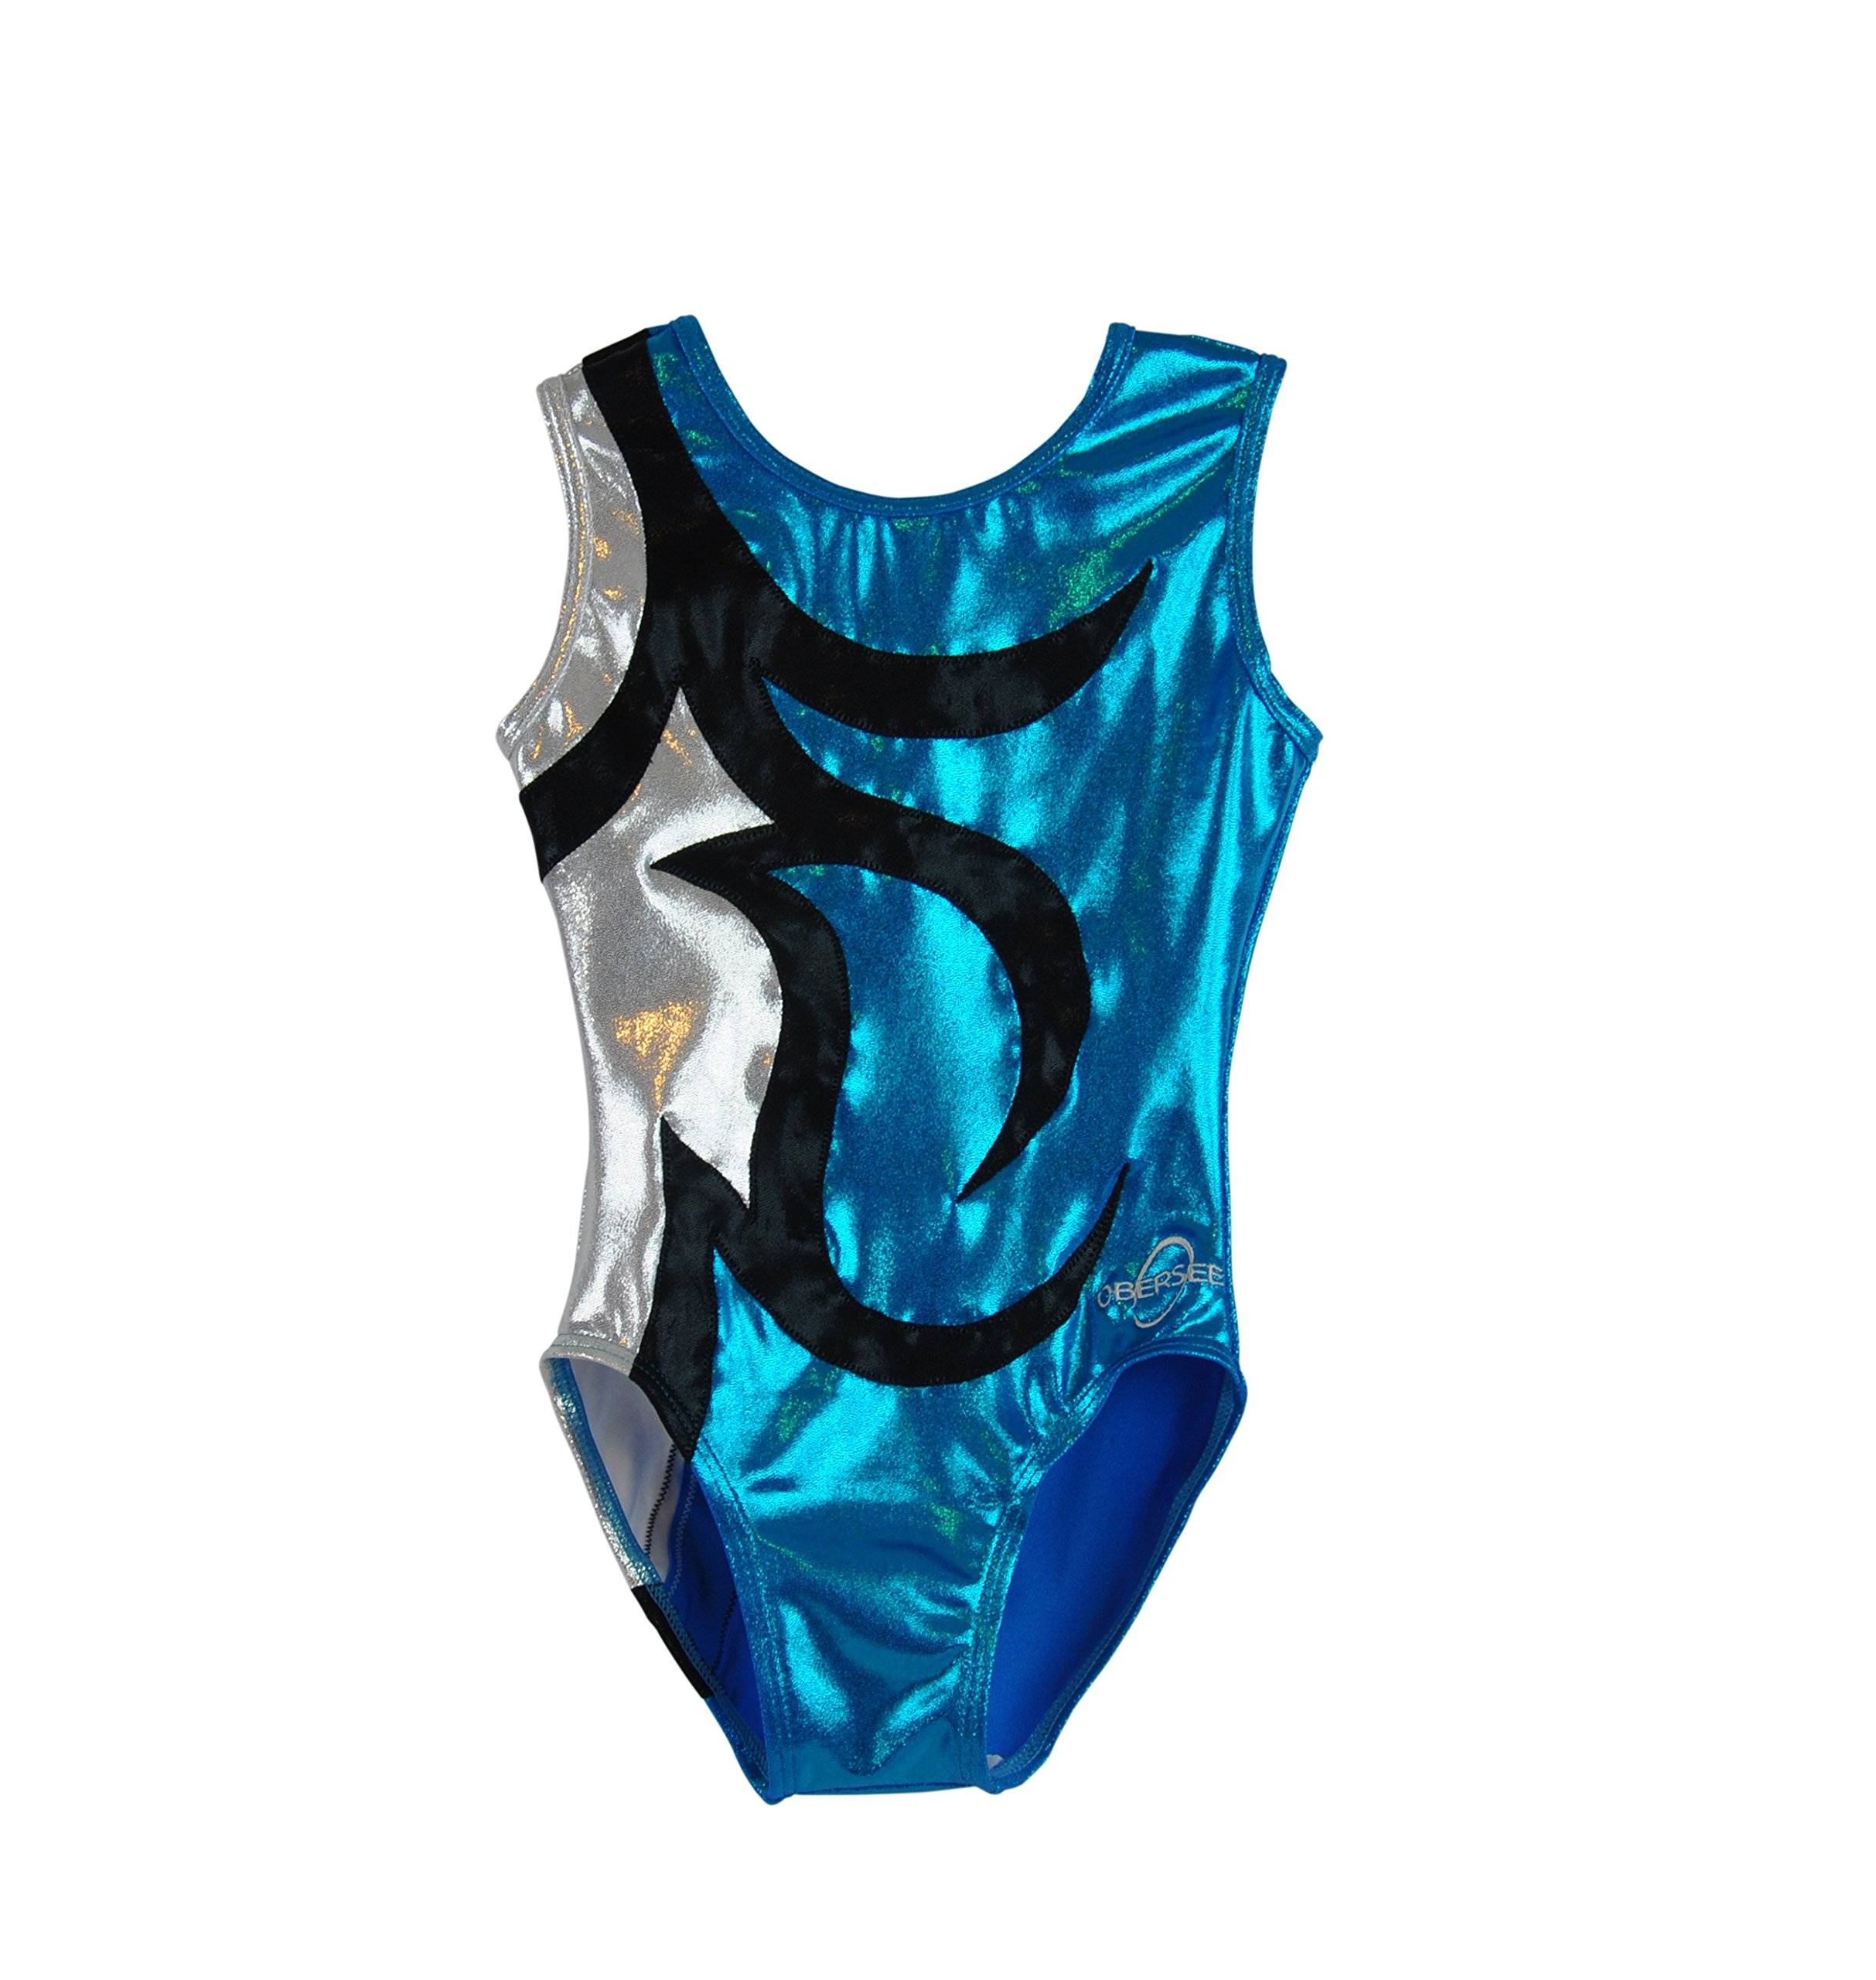 Obersee Kid's Gymnastics Leotard, Abby Turquoise, cm by Obersee